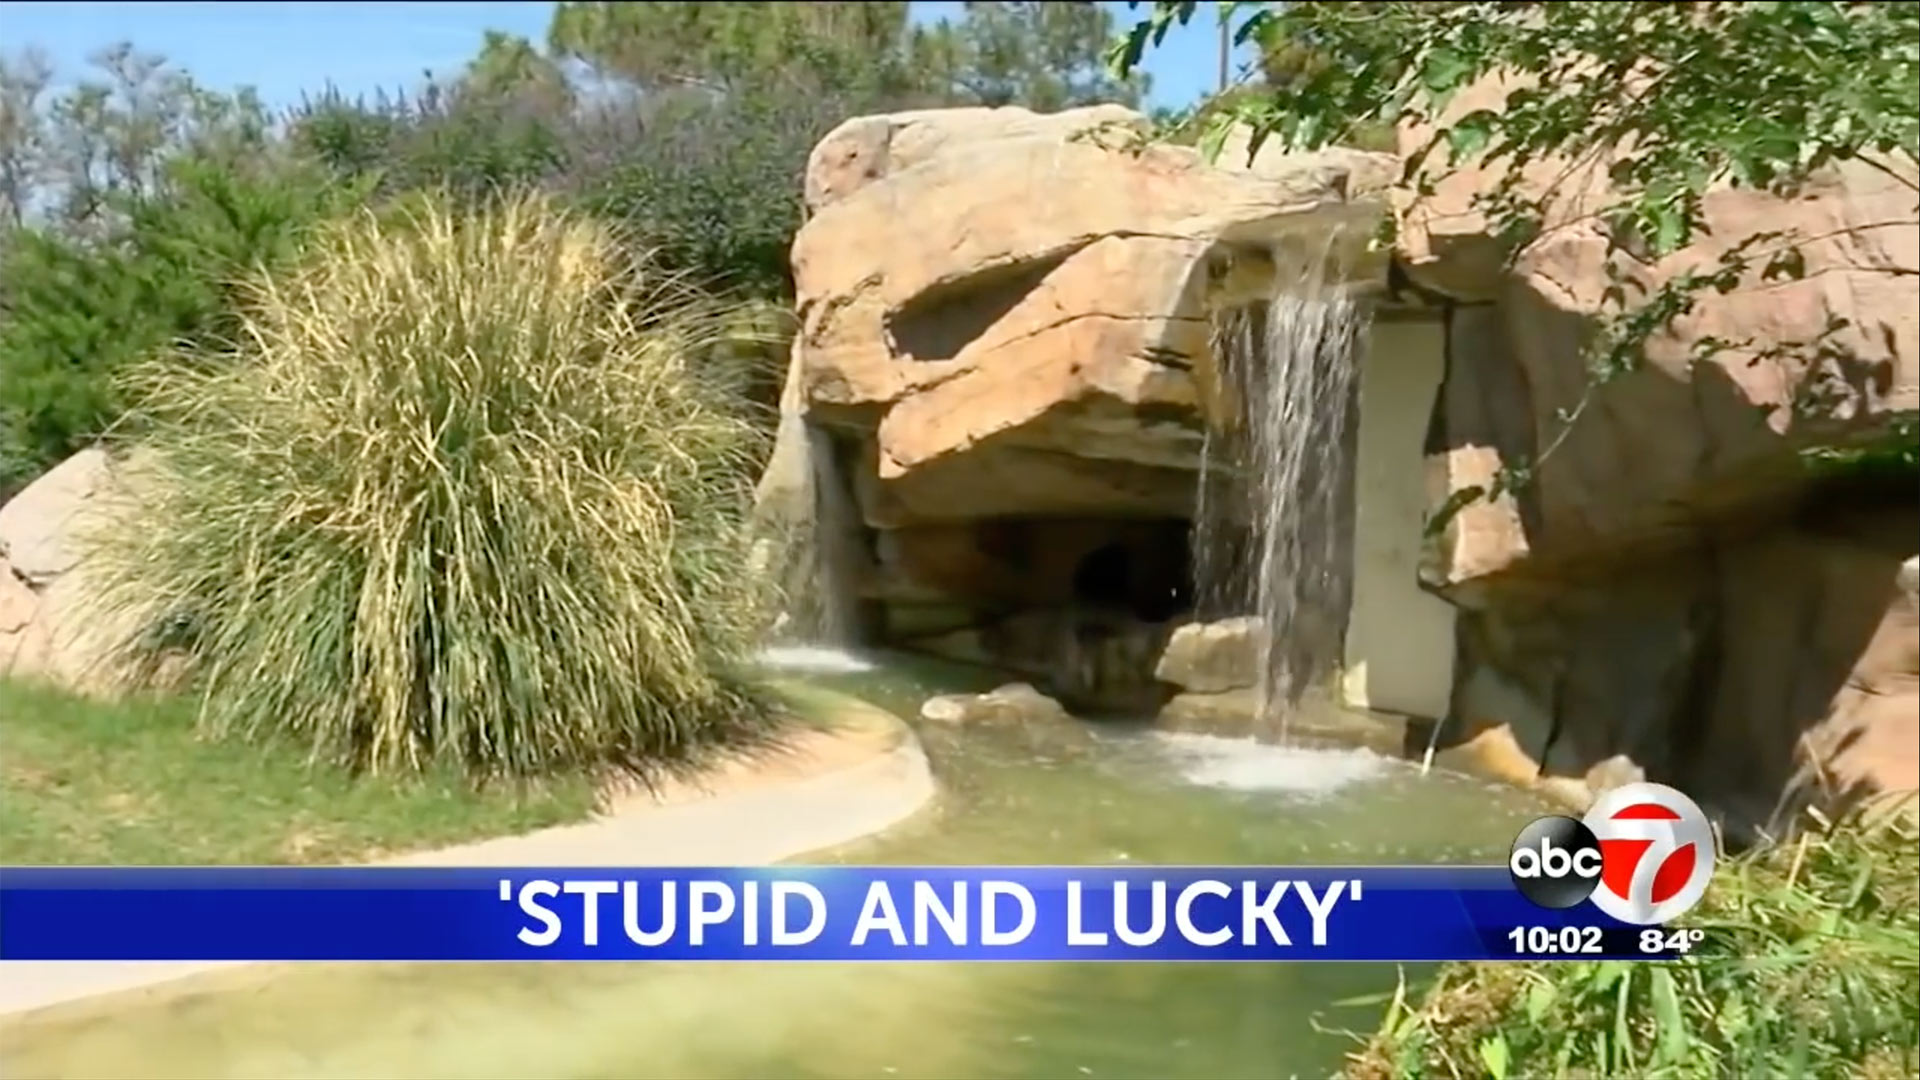 Texas Woman Facing Charges After Jumping Into Monkey Habitat at El Paso Zoo: 'Stupid and Lucky'